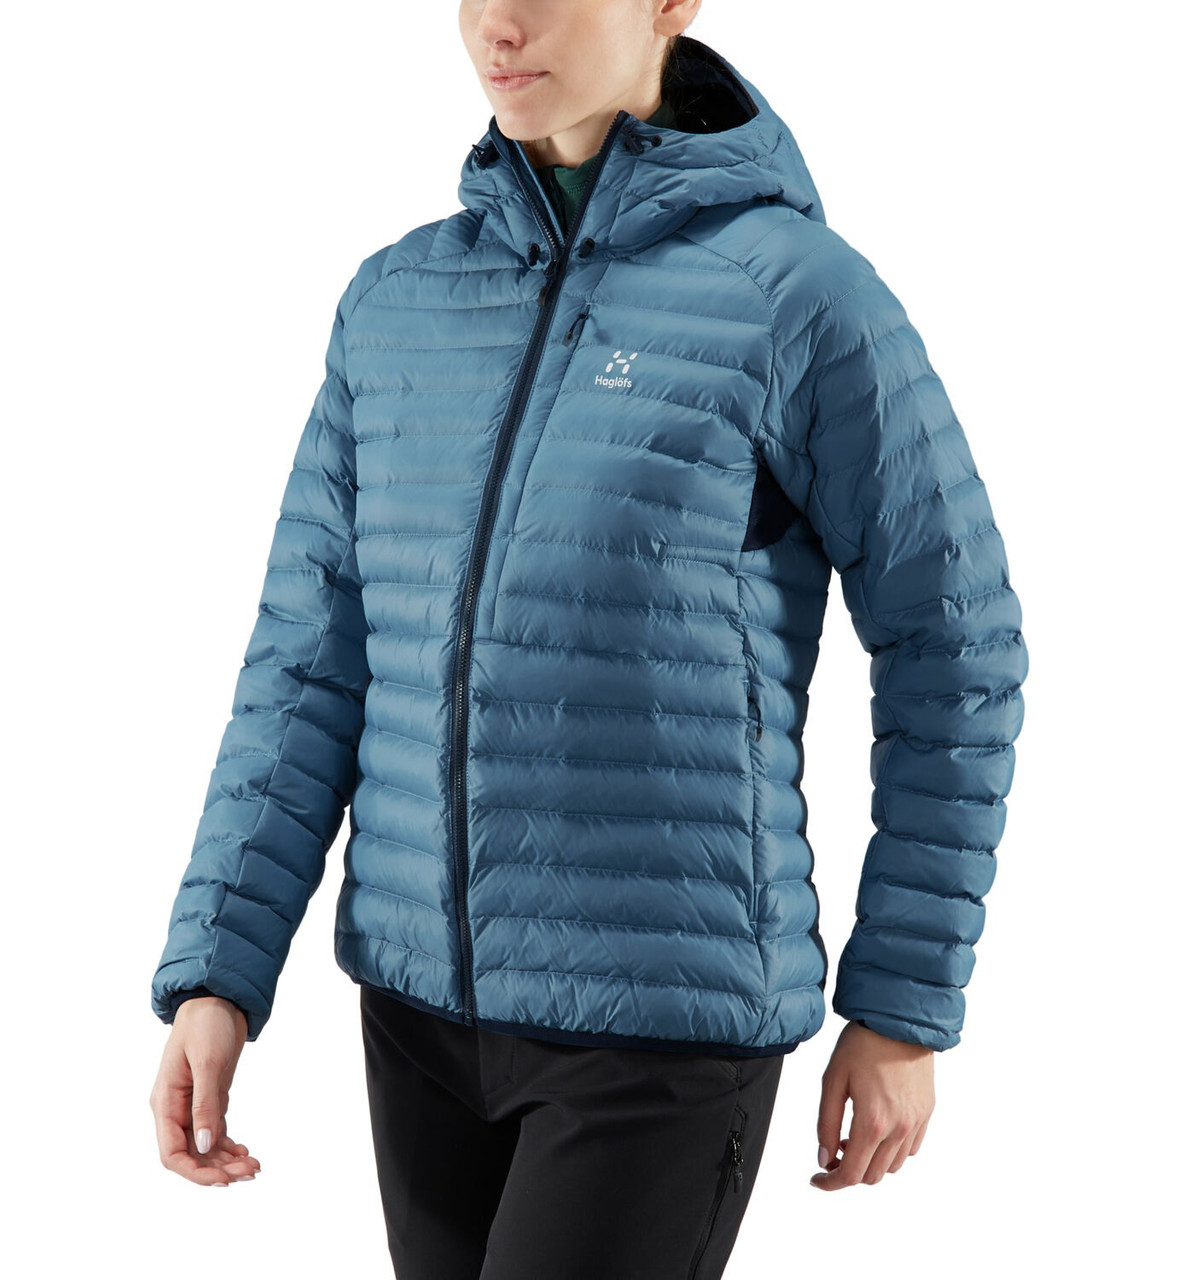 haglofs essens mimic hood women silver blue / dense blue | women's winter jacket